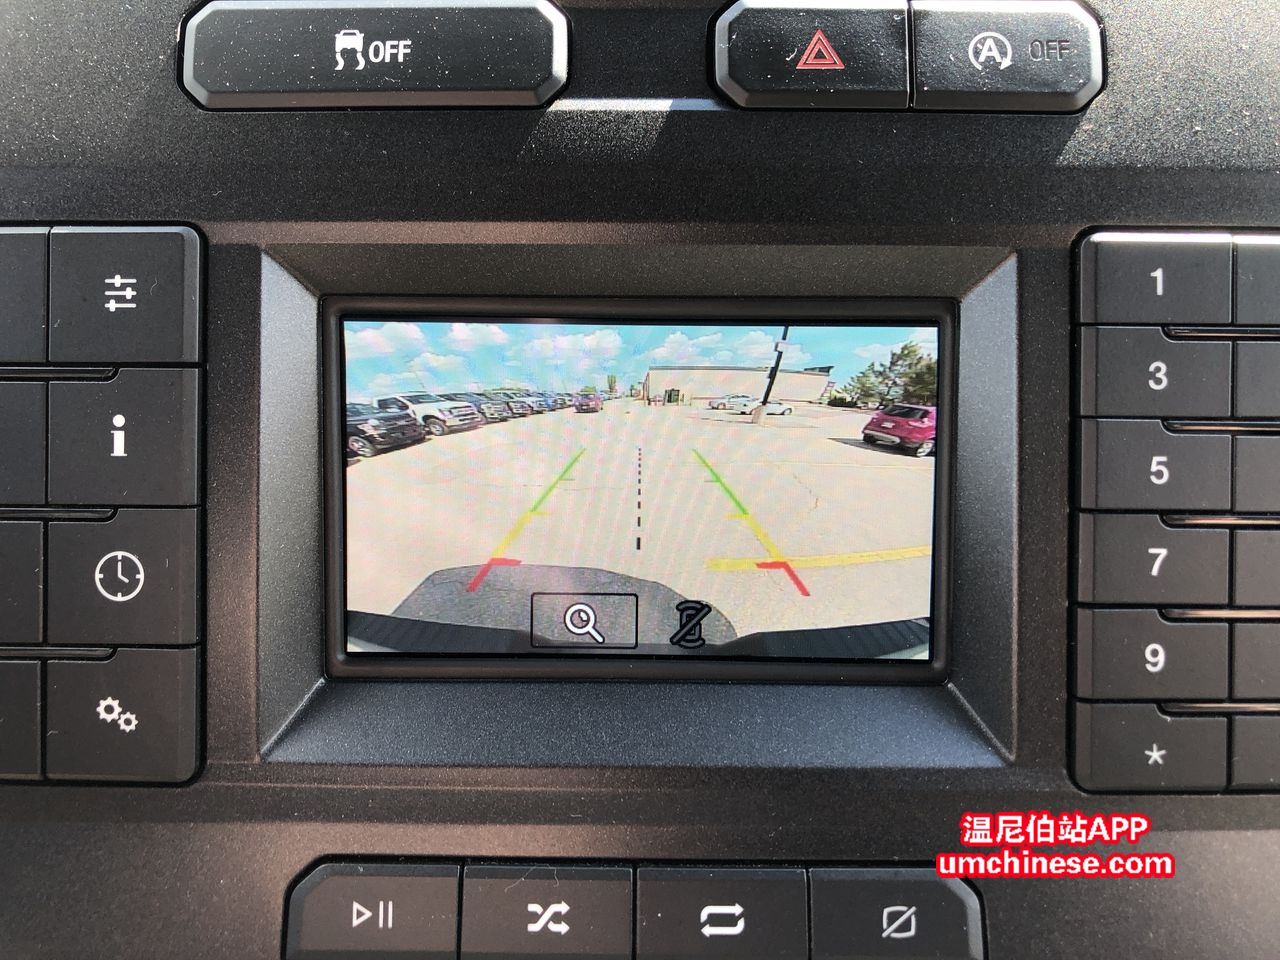 capital ford winnipeg 2018f-150-backup camera.jpg